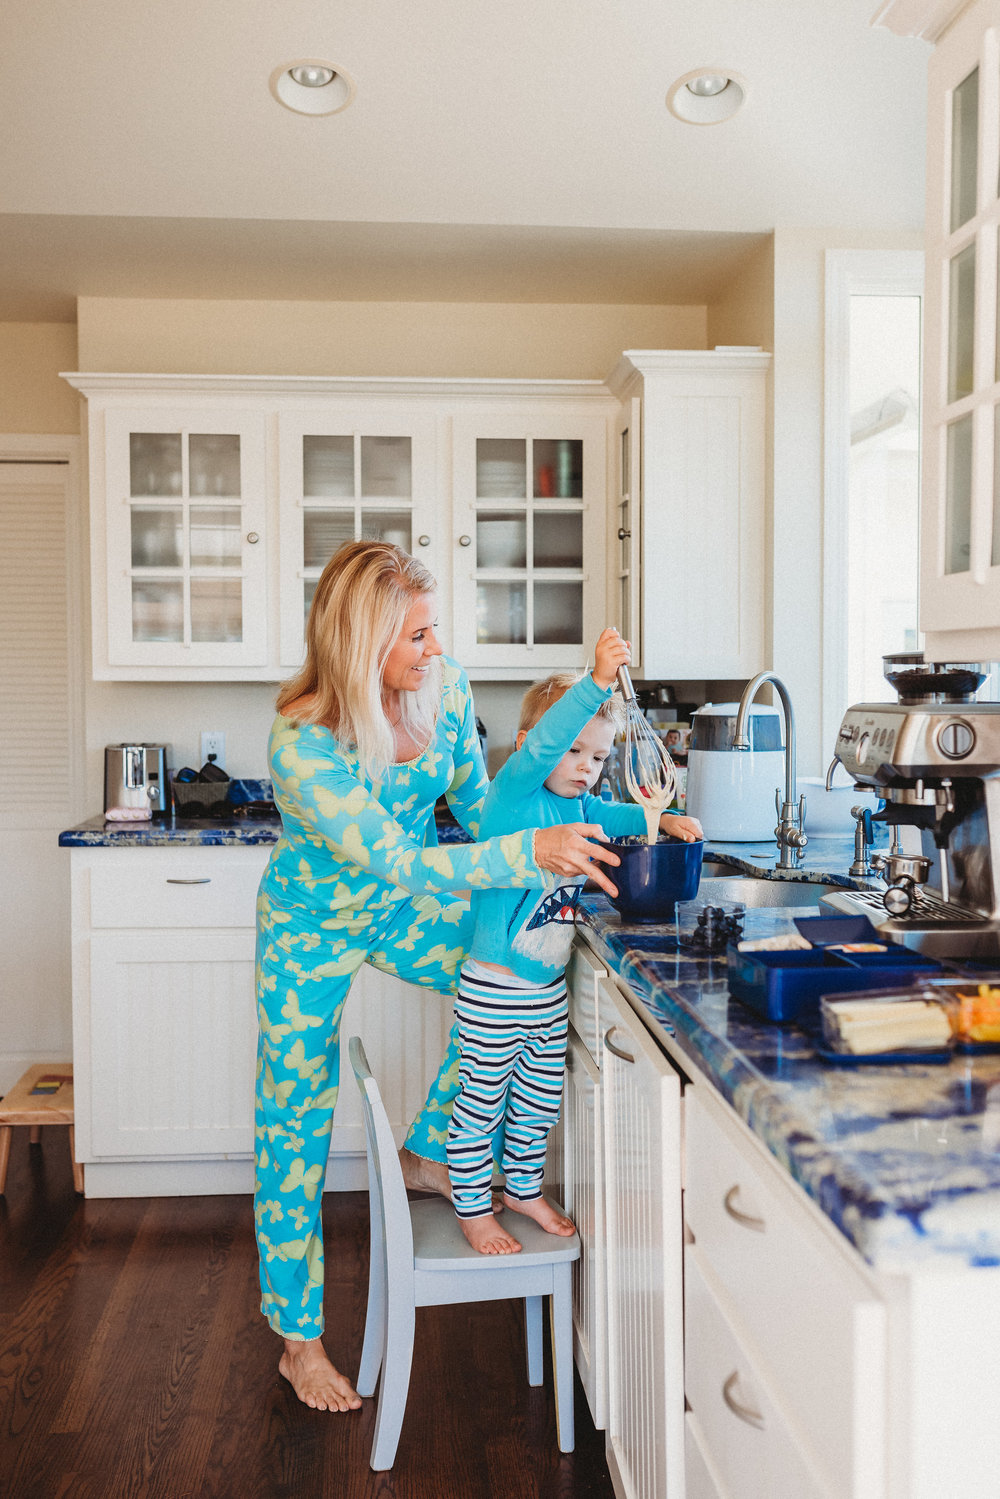 family pancakes morning routine mom of two toddlers pj mornings family time quality time20.jpg